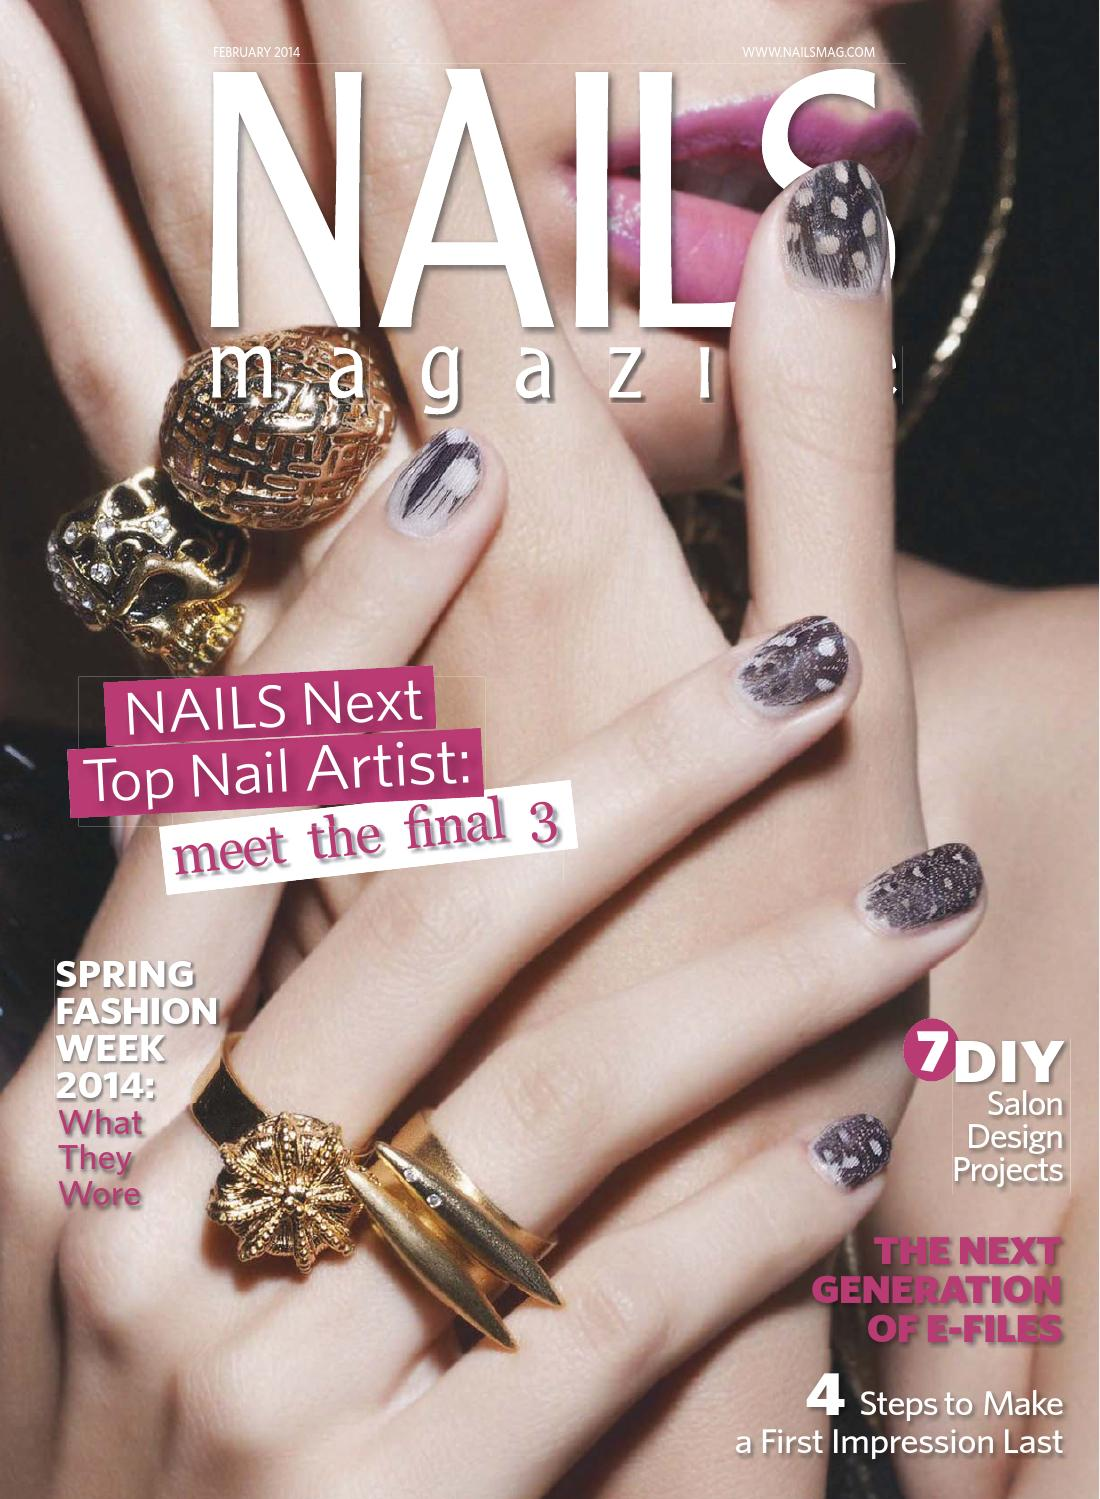 Nails Magazine 2014 02 By Reforma Nails Cz Issuu